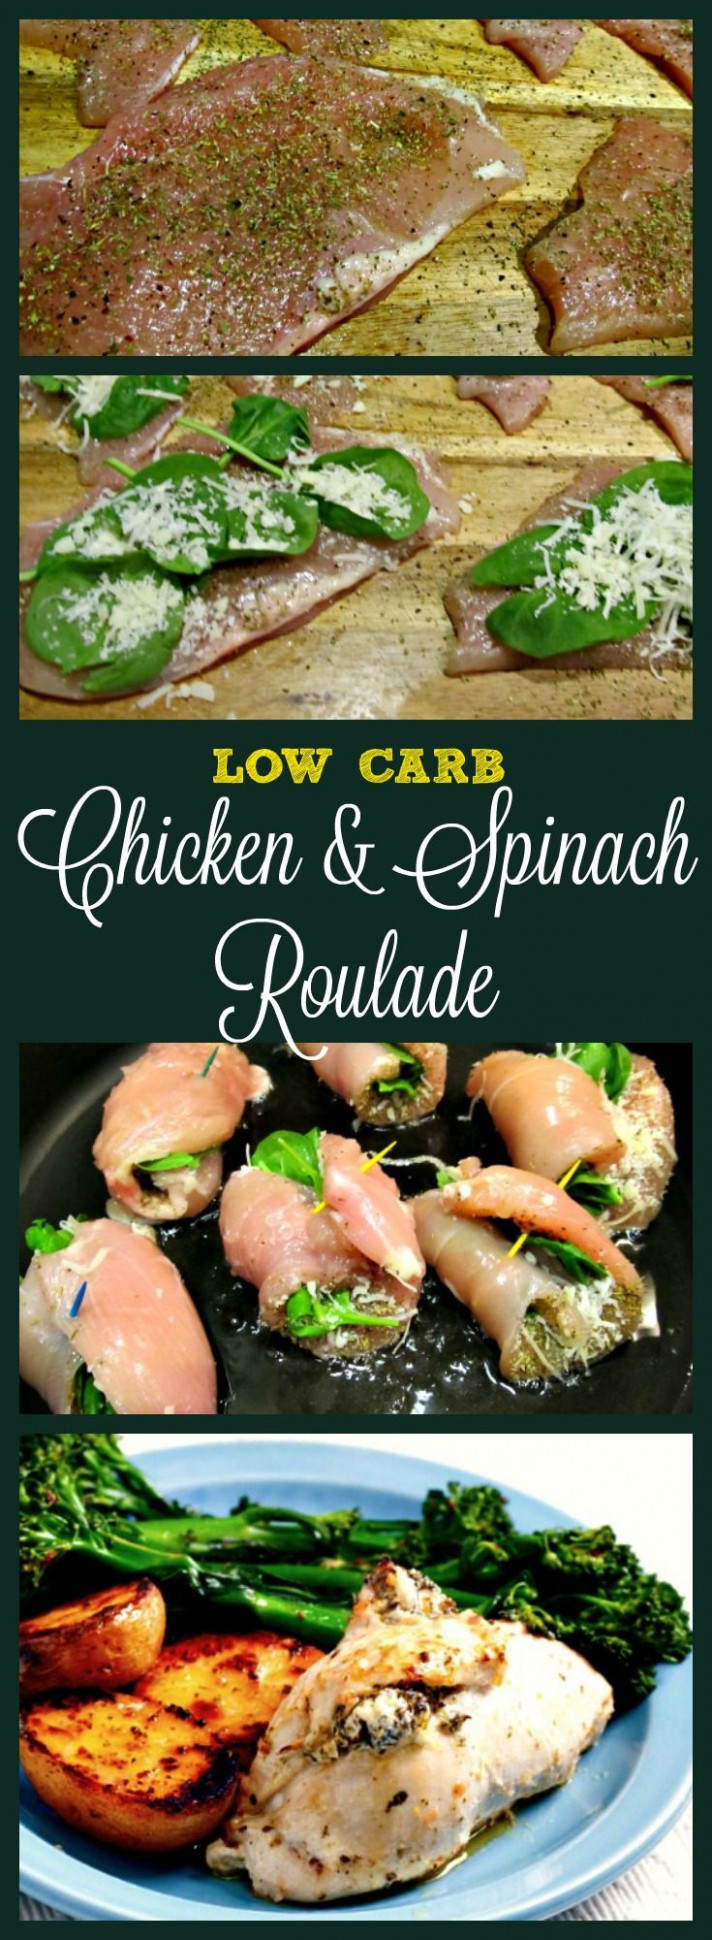 A low-carb meal the whole family can enjoy. Plus, tips to ...